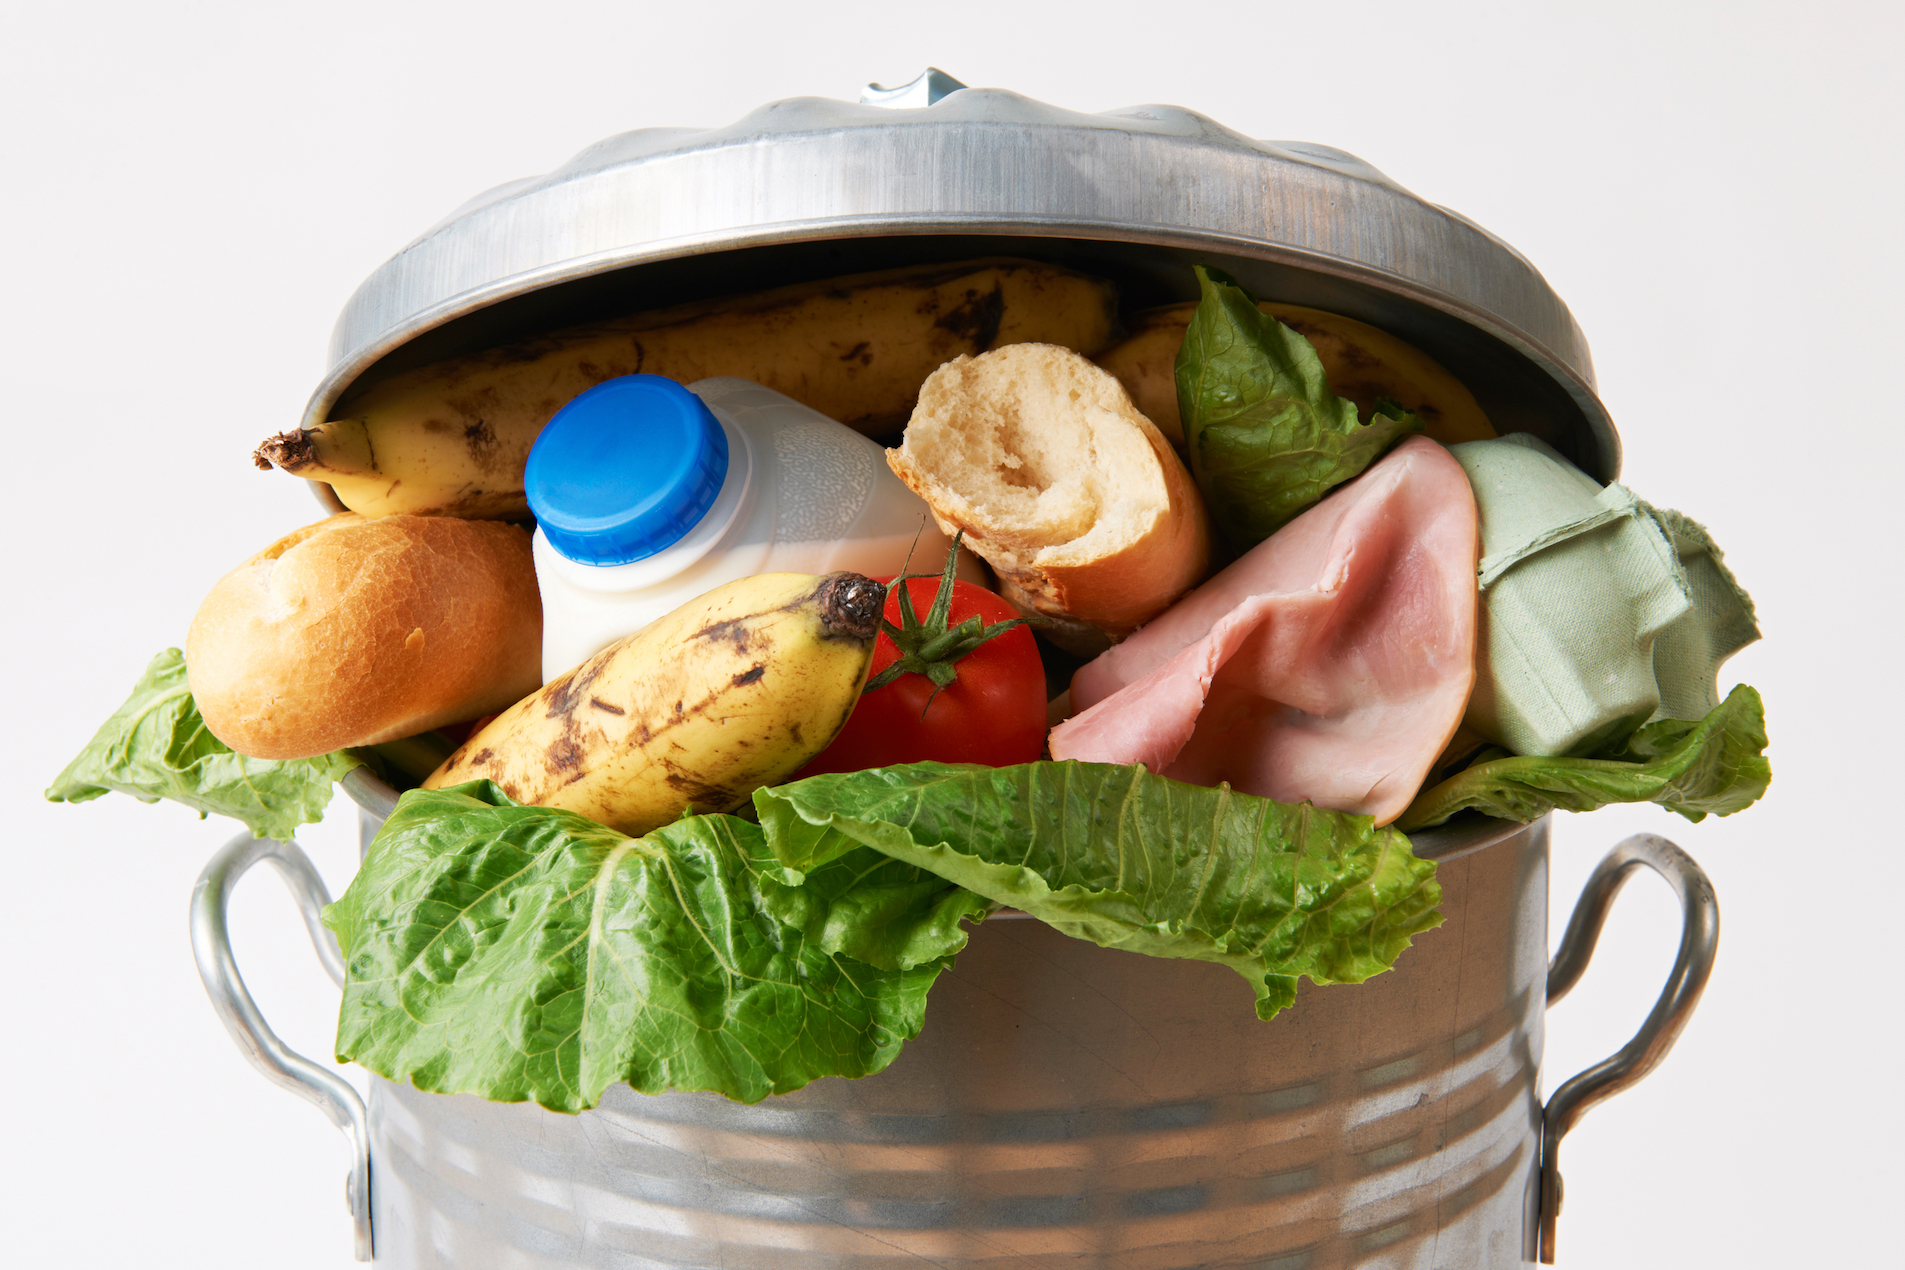 We often throw out food that has spoiled, rotted, or landed on our plate in too high a quantity. But have you ever thought about how much food we waste per year?